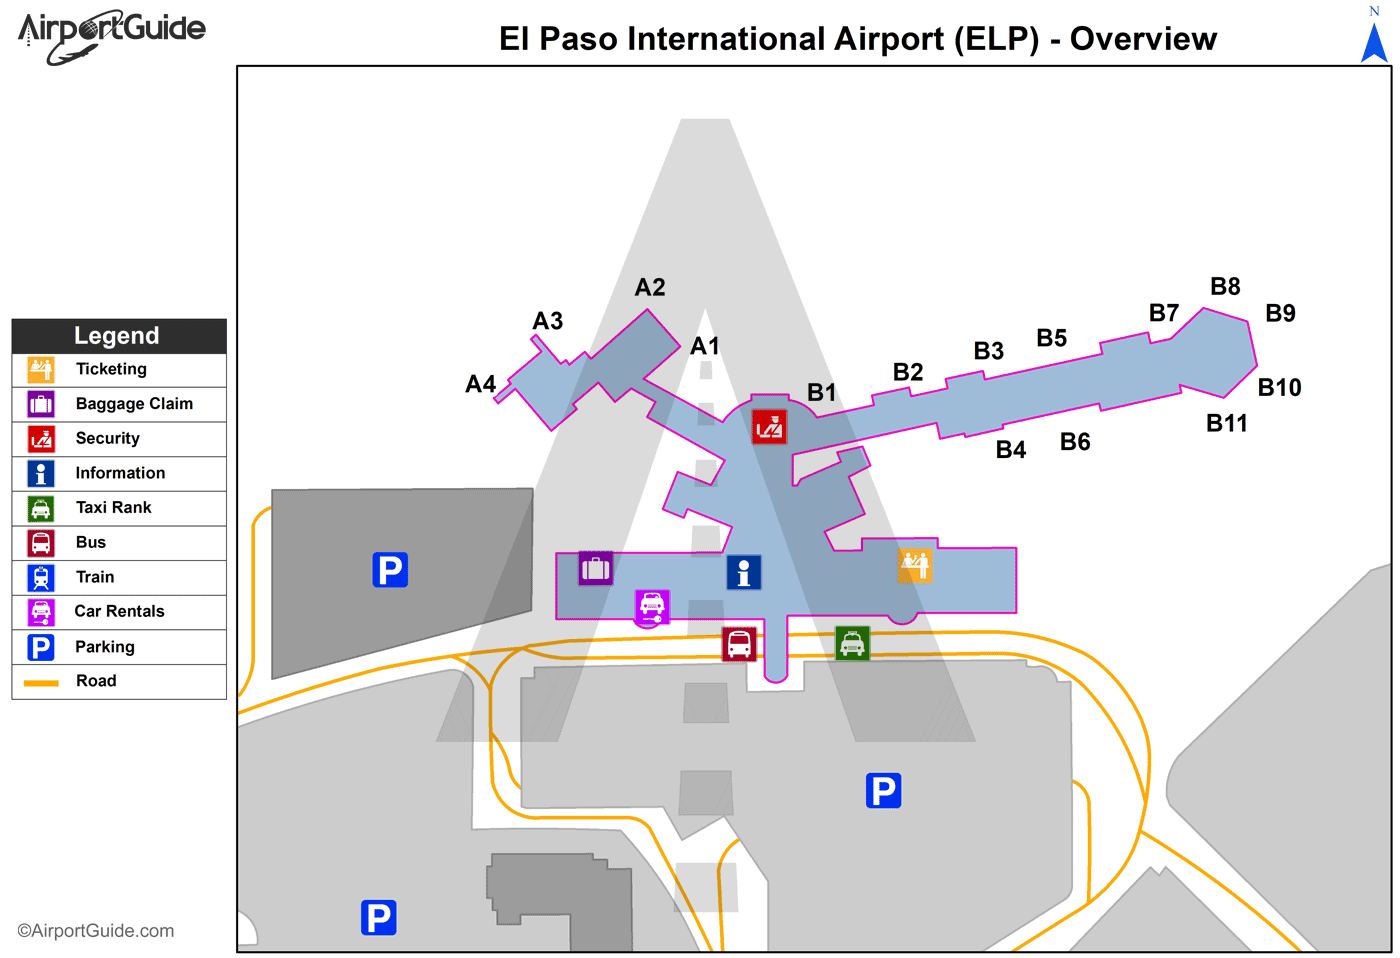 El Paso - El Paso International (ELP) Airport Terminal Map - Overview